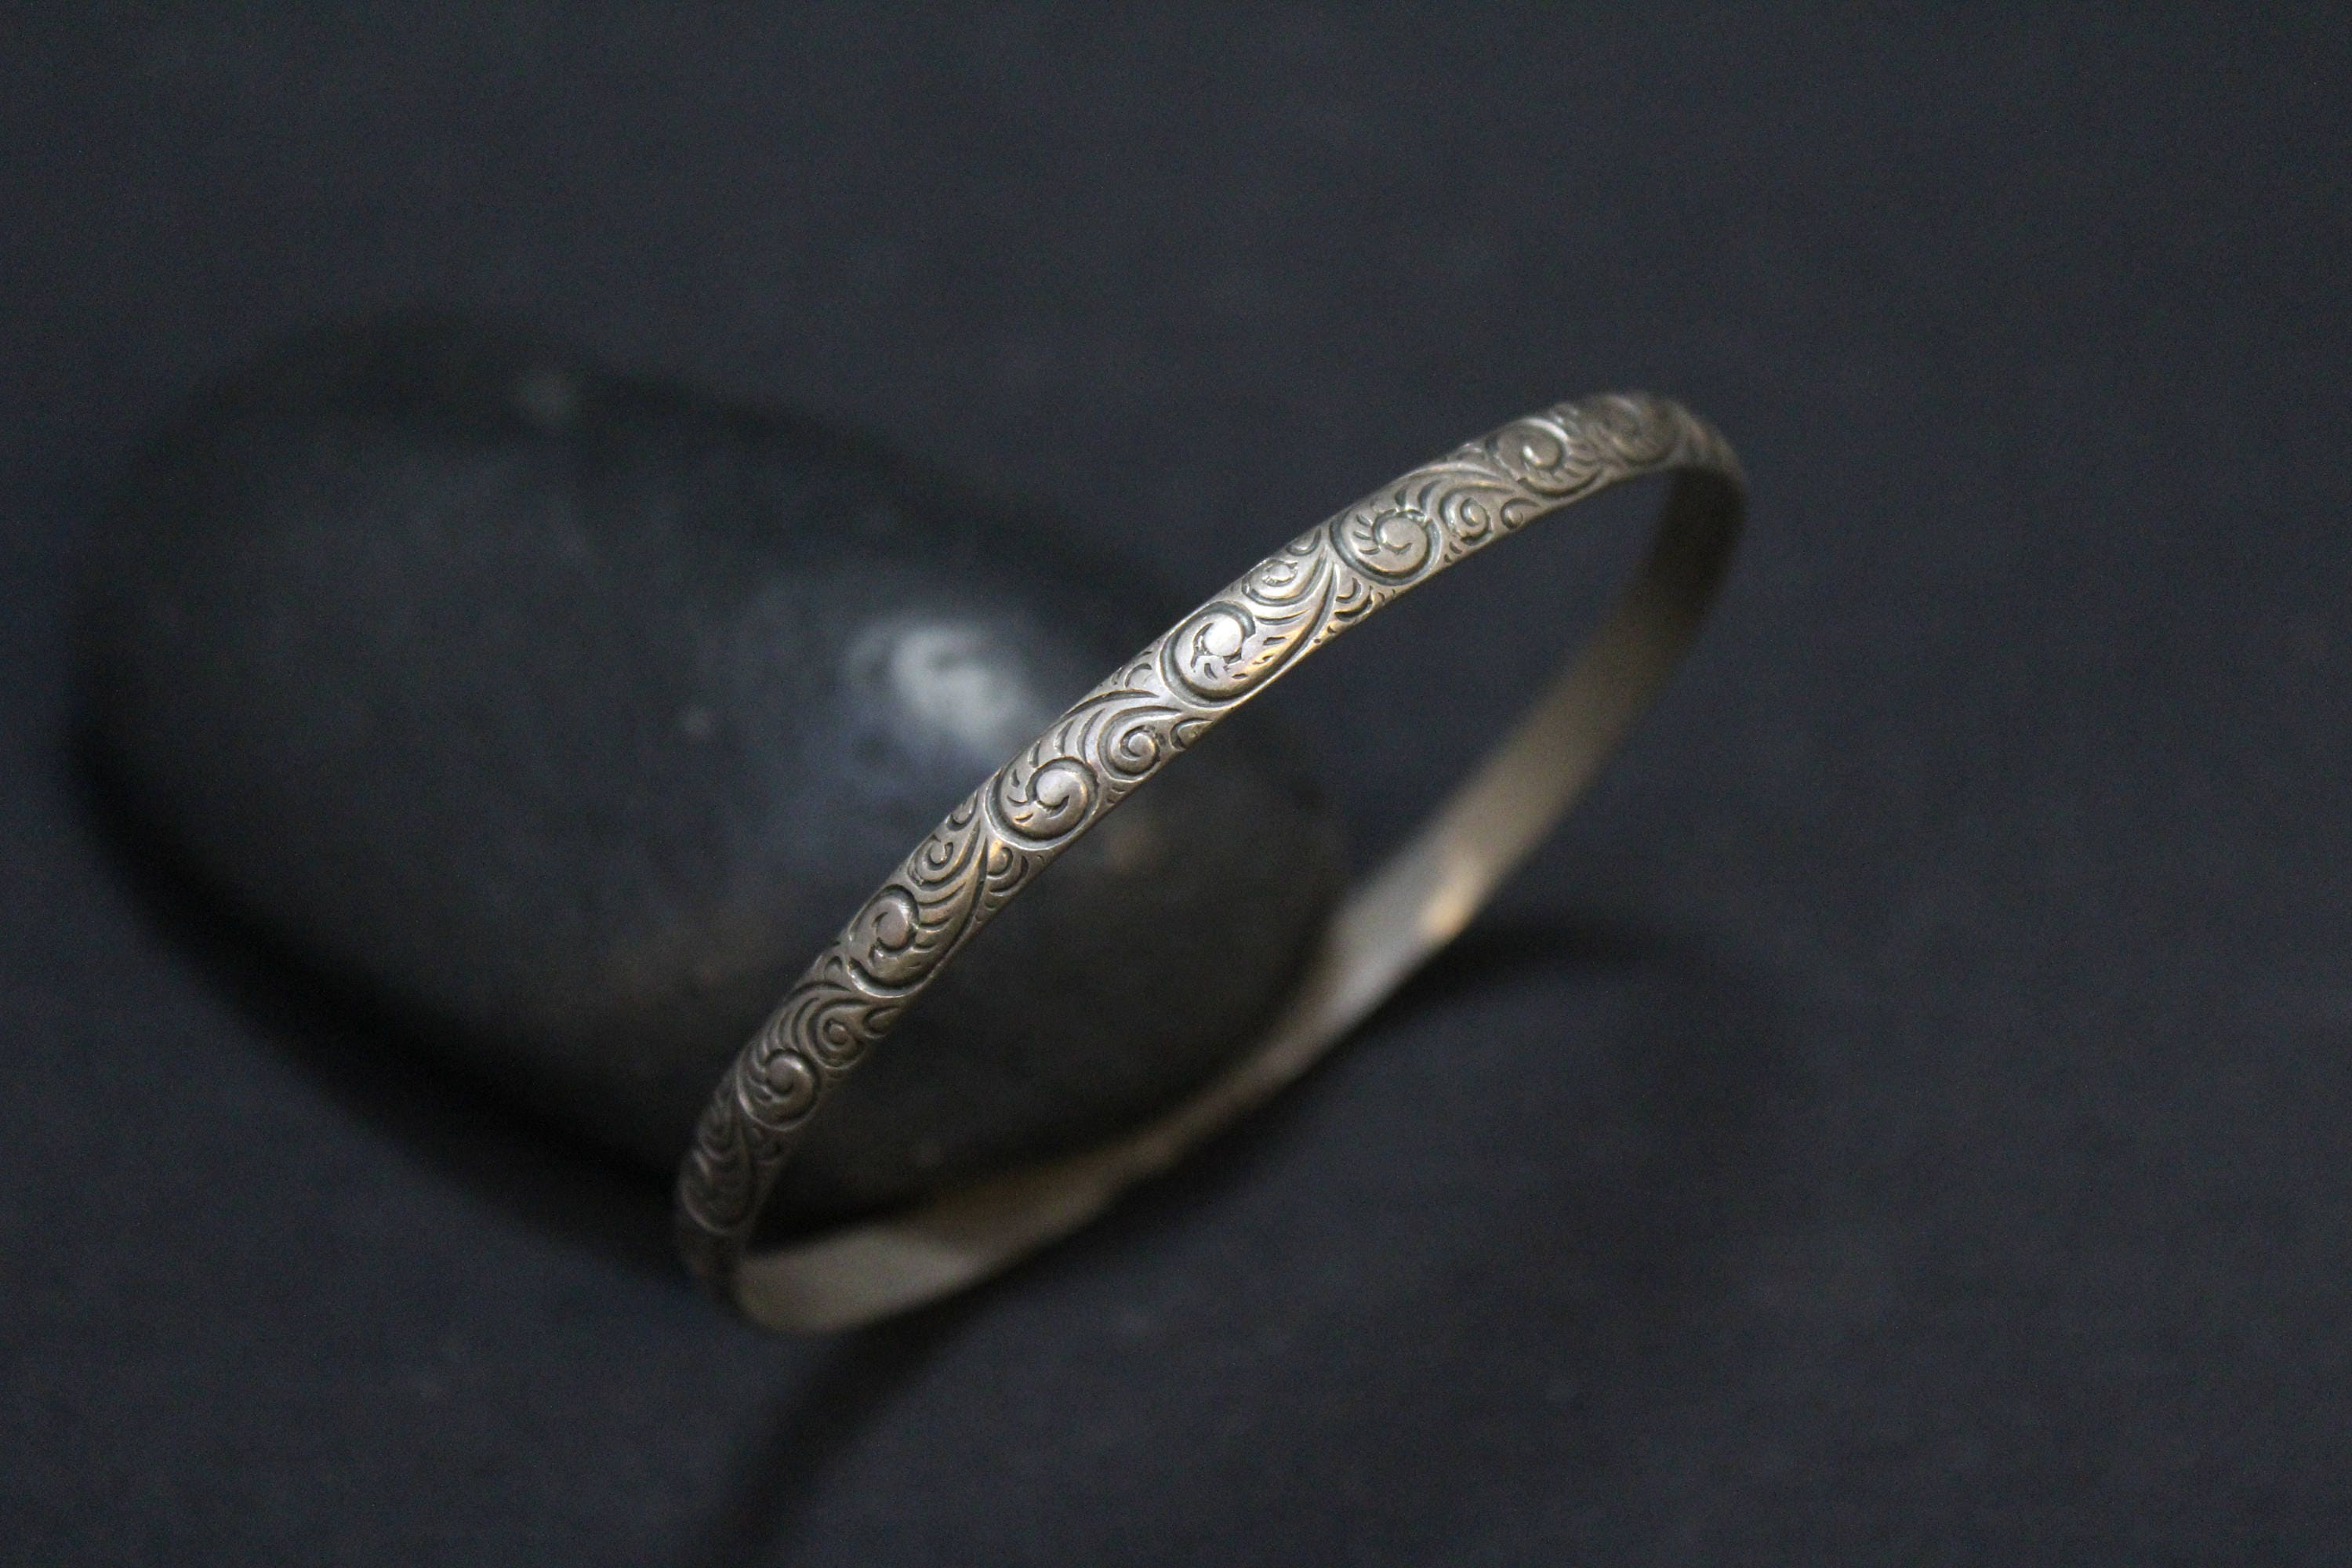 wedding bangle rings uk silver platinum sterling patterned flecked slave inspirational